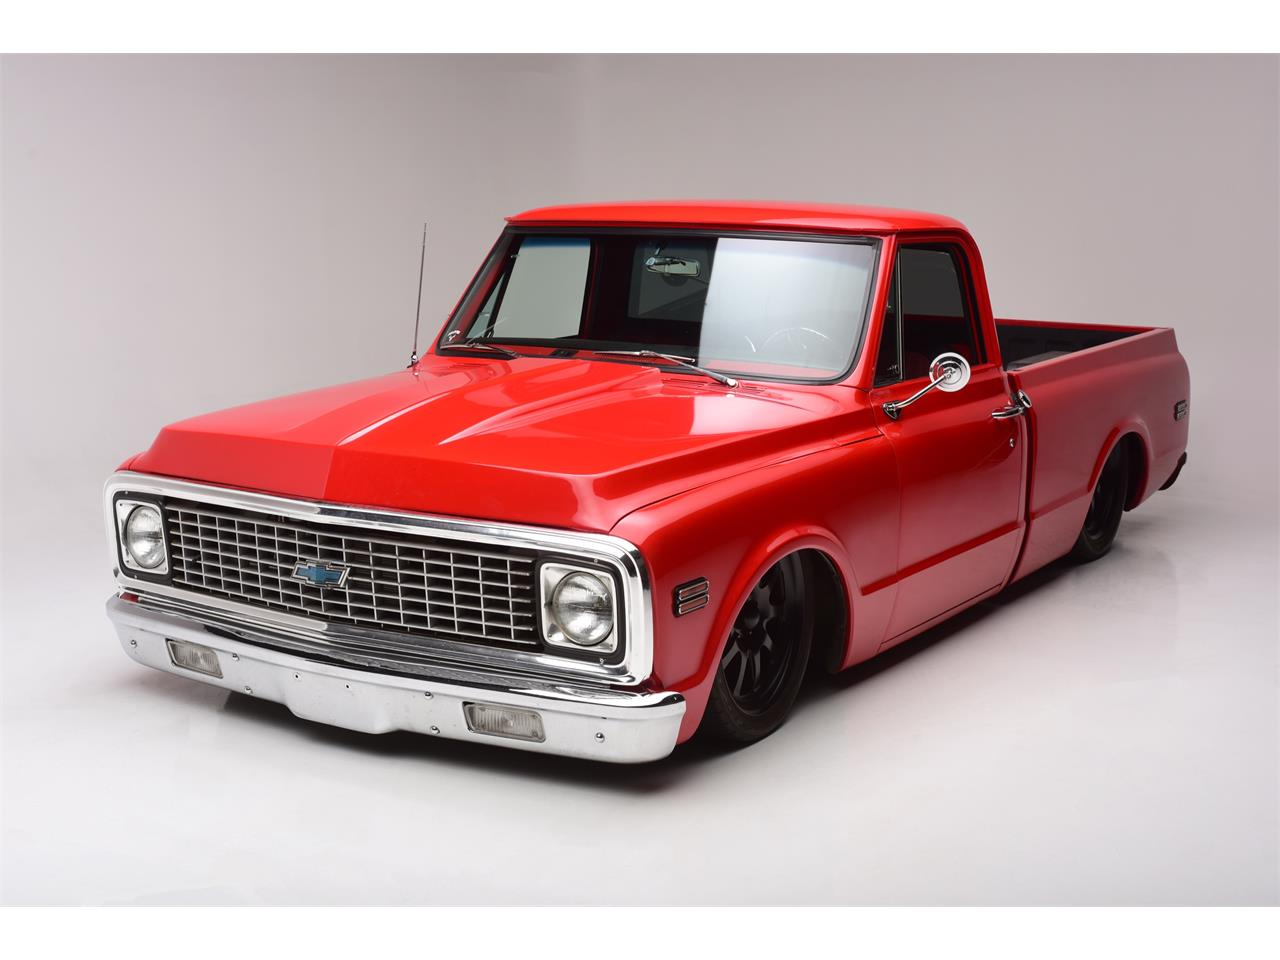 Large Picture of 1972 Chevrolet C/K 10 located in Scottsdale Arizona - $47,400.00 Offered by Barrett-Jackson Collection Showroom - LB38